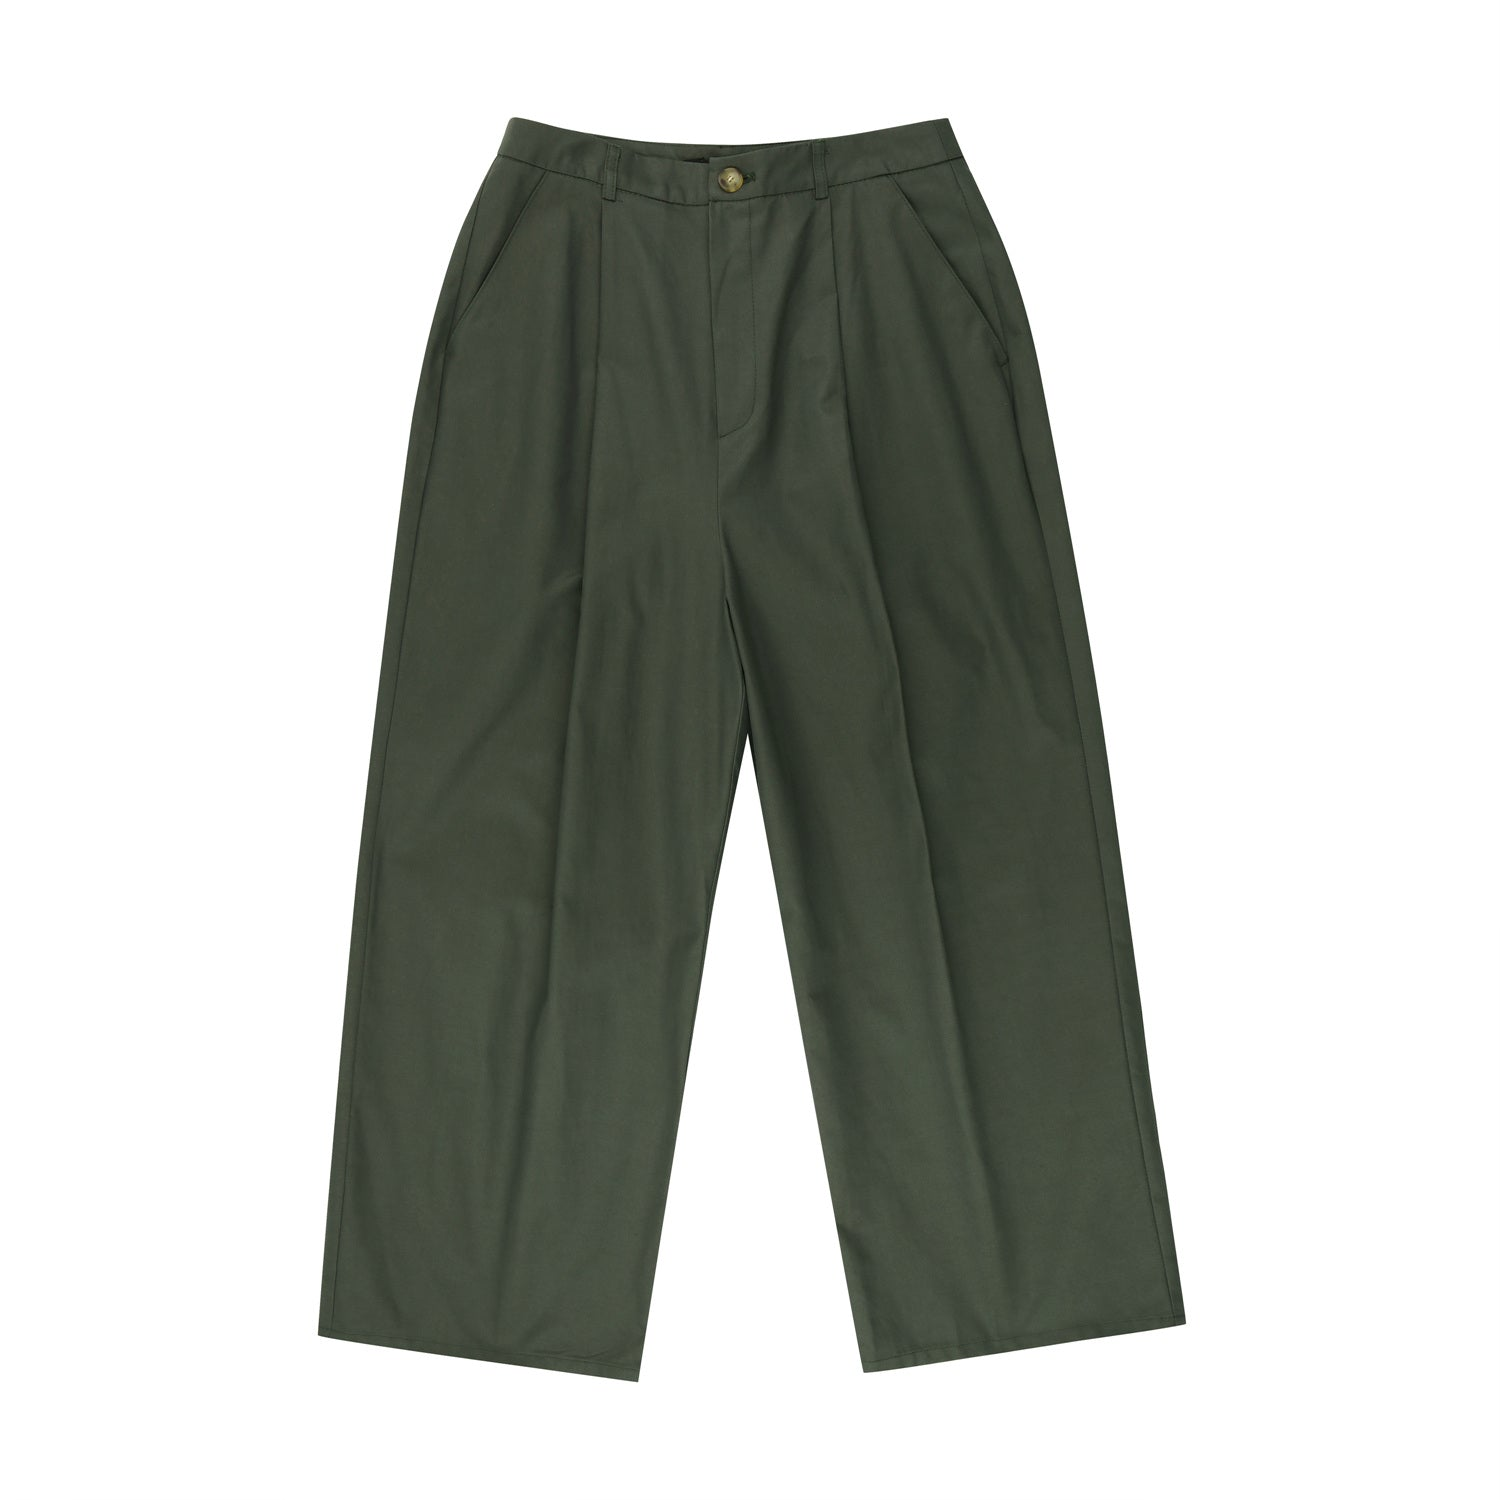 Cotton button pants - Khaki